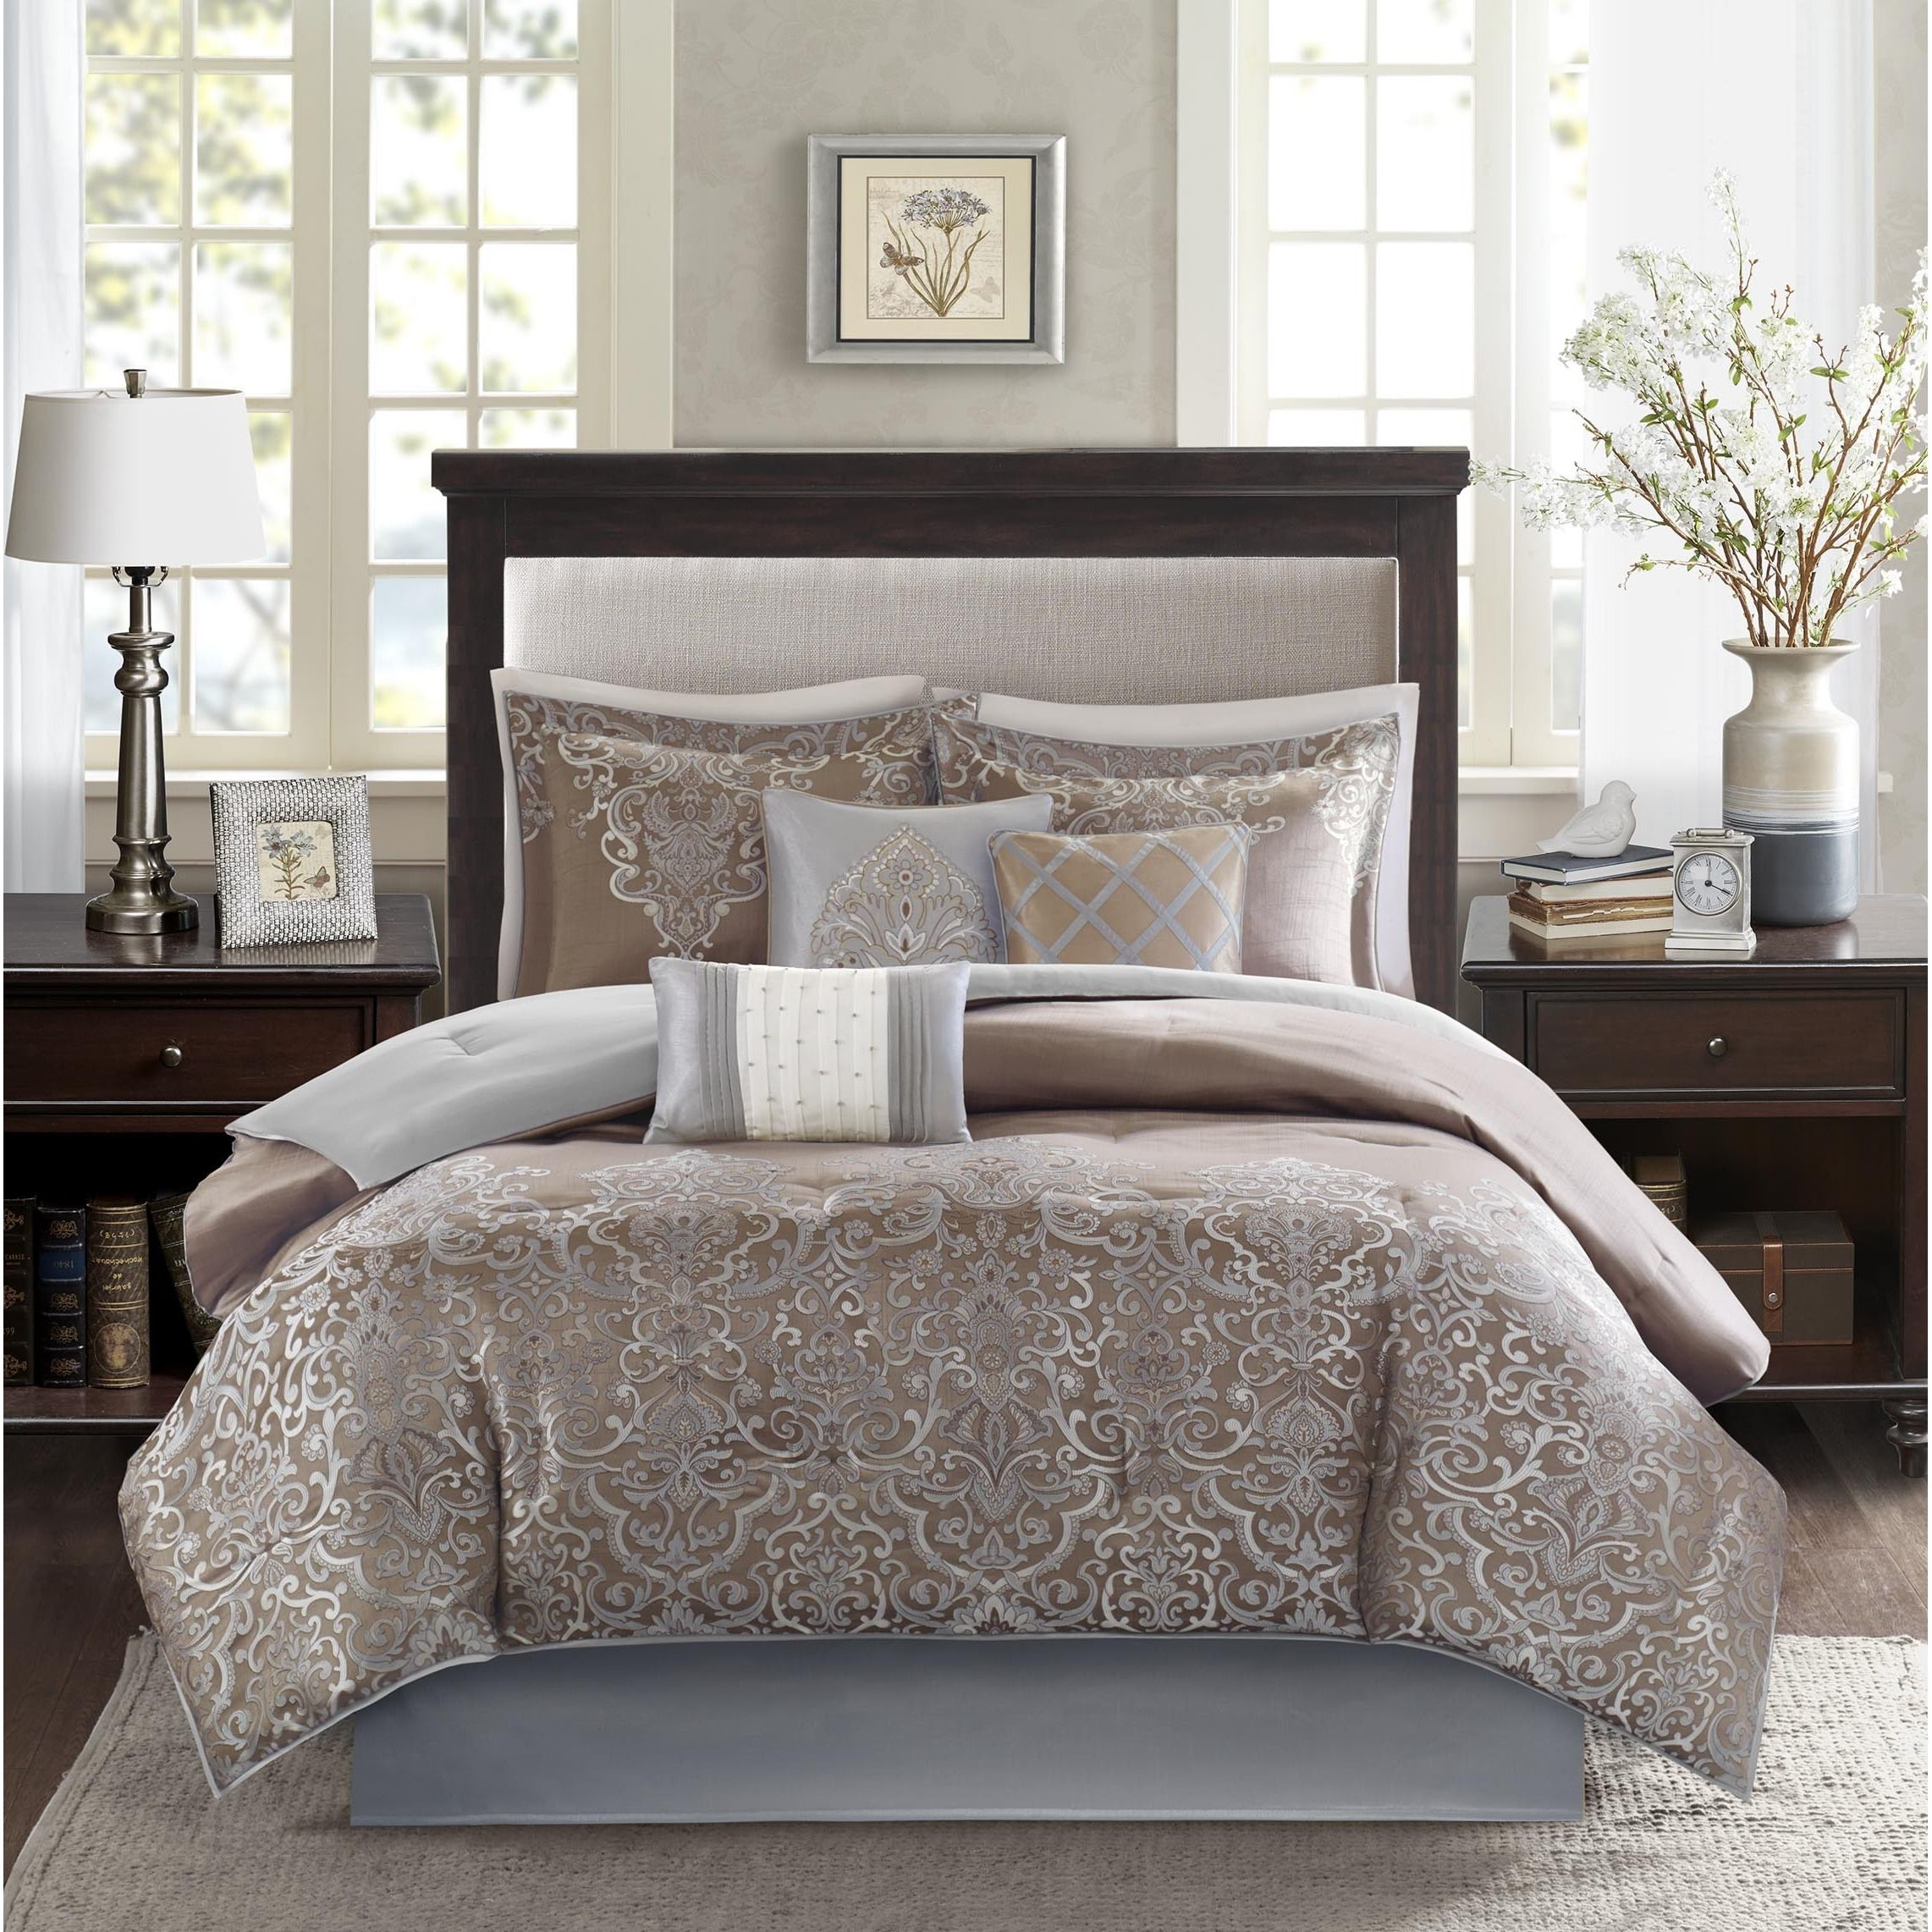 1000 Images About Bedroom On Pinterest Luxury Bedding Blue And